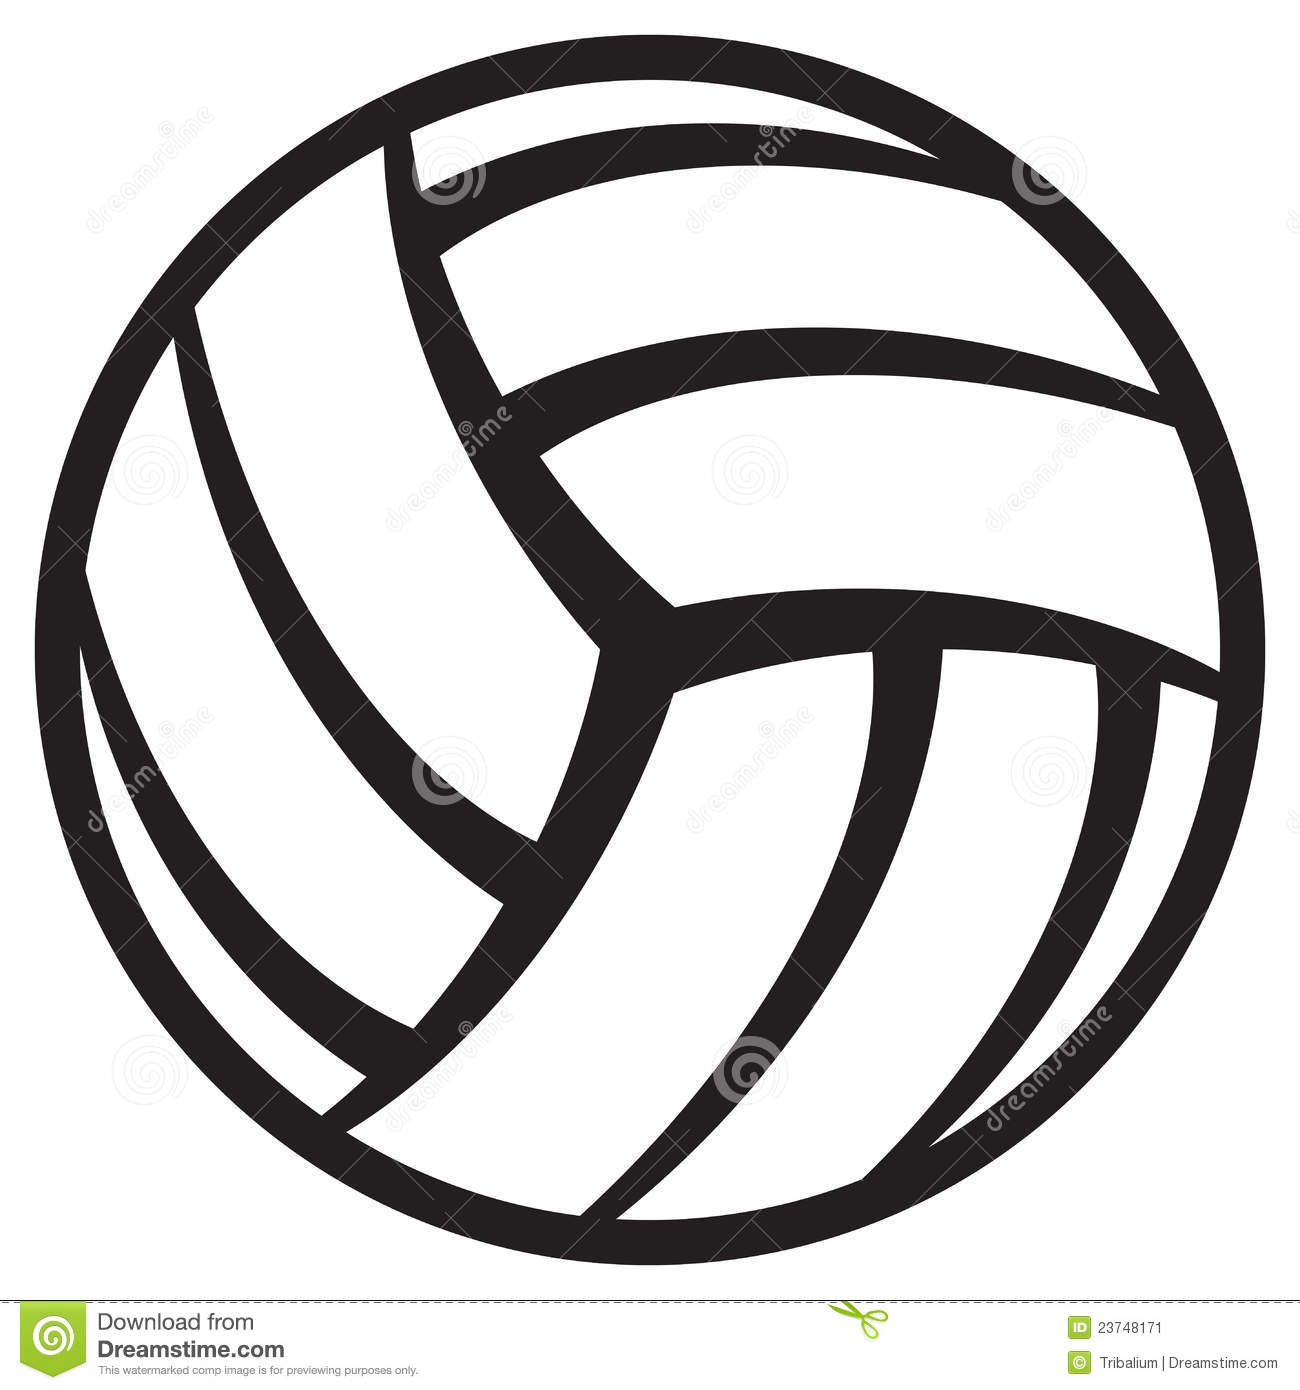 Free volleyball logos clipart clip royalty free Volleyball logo clipart 4 » Clipart Station clip royalty free